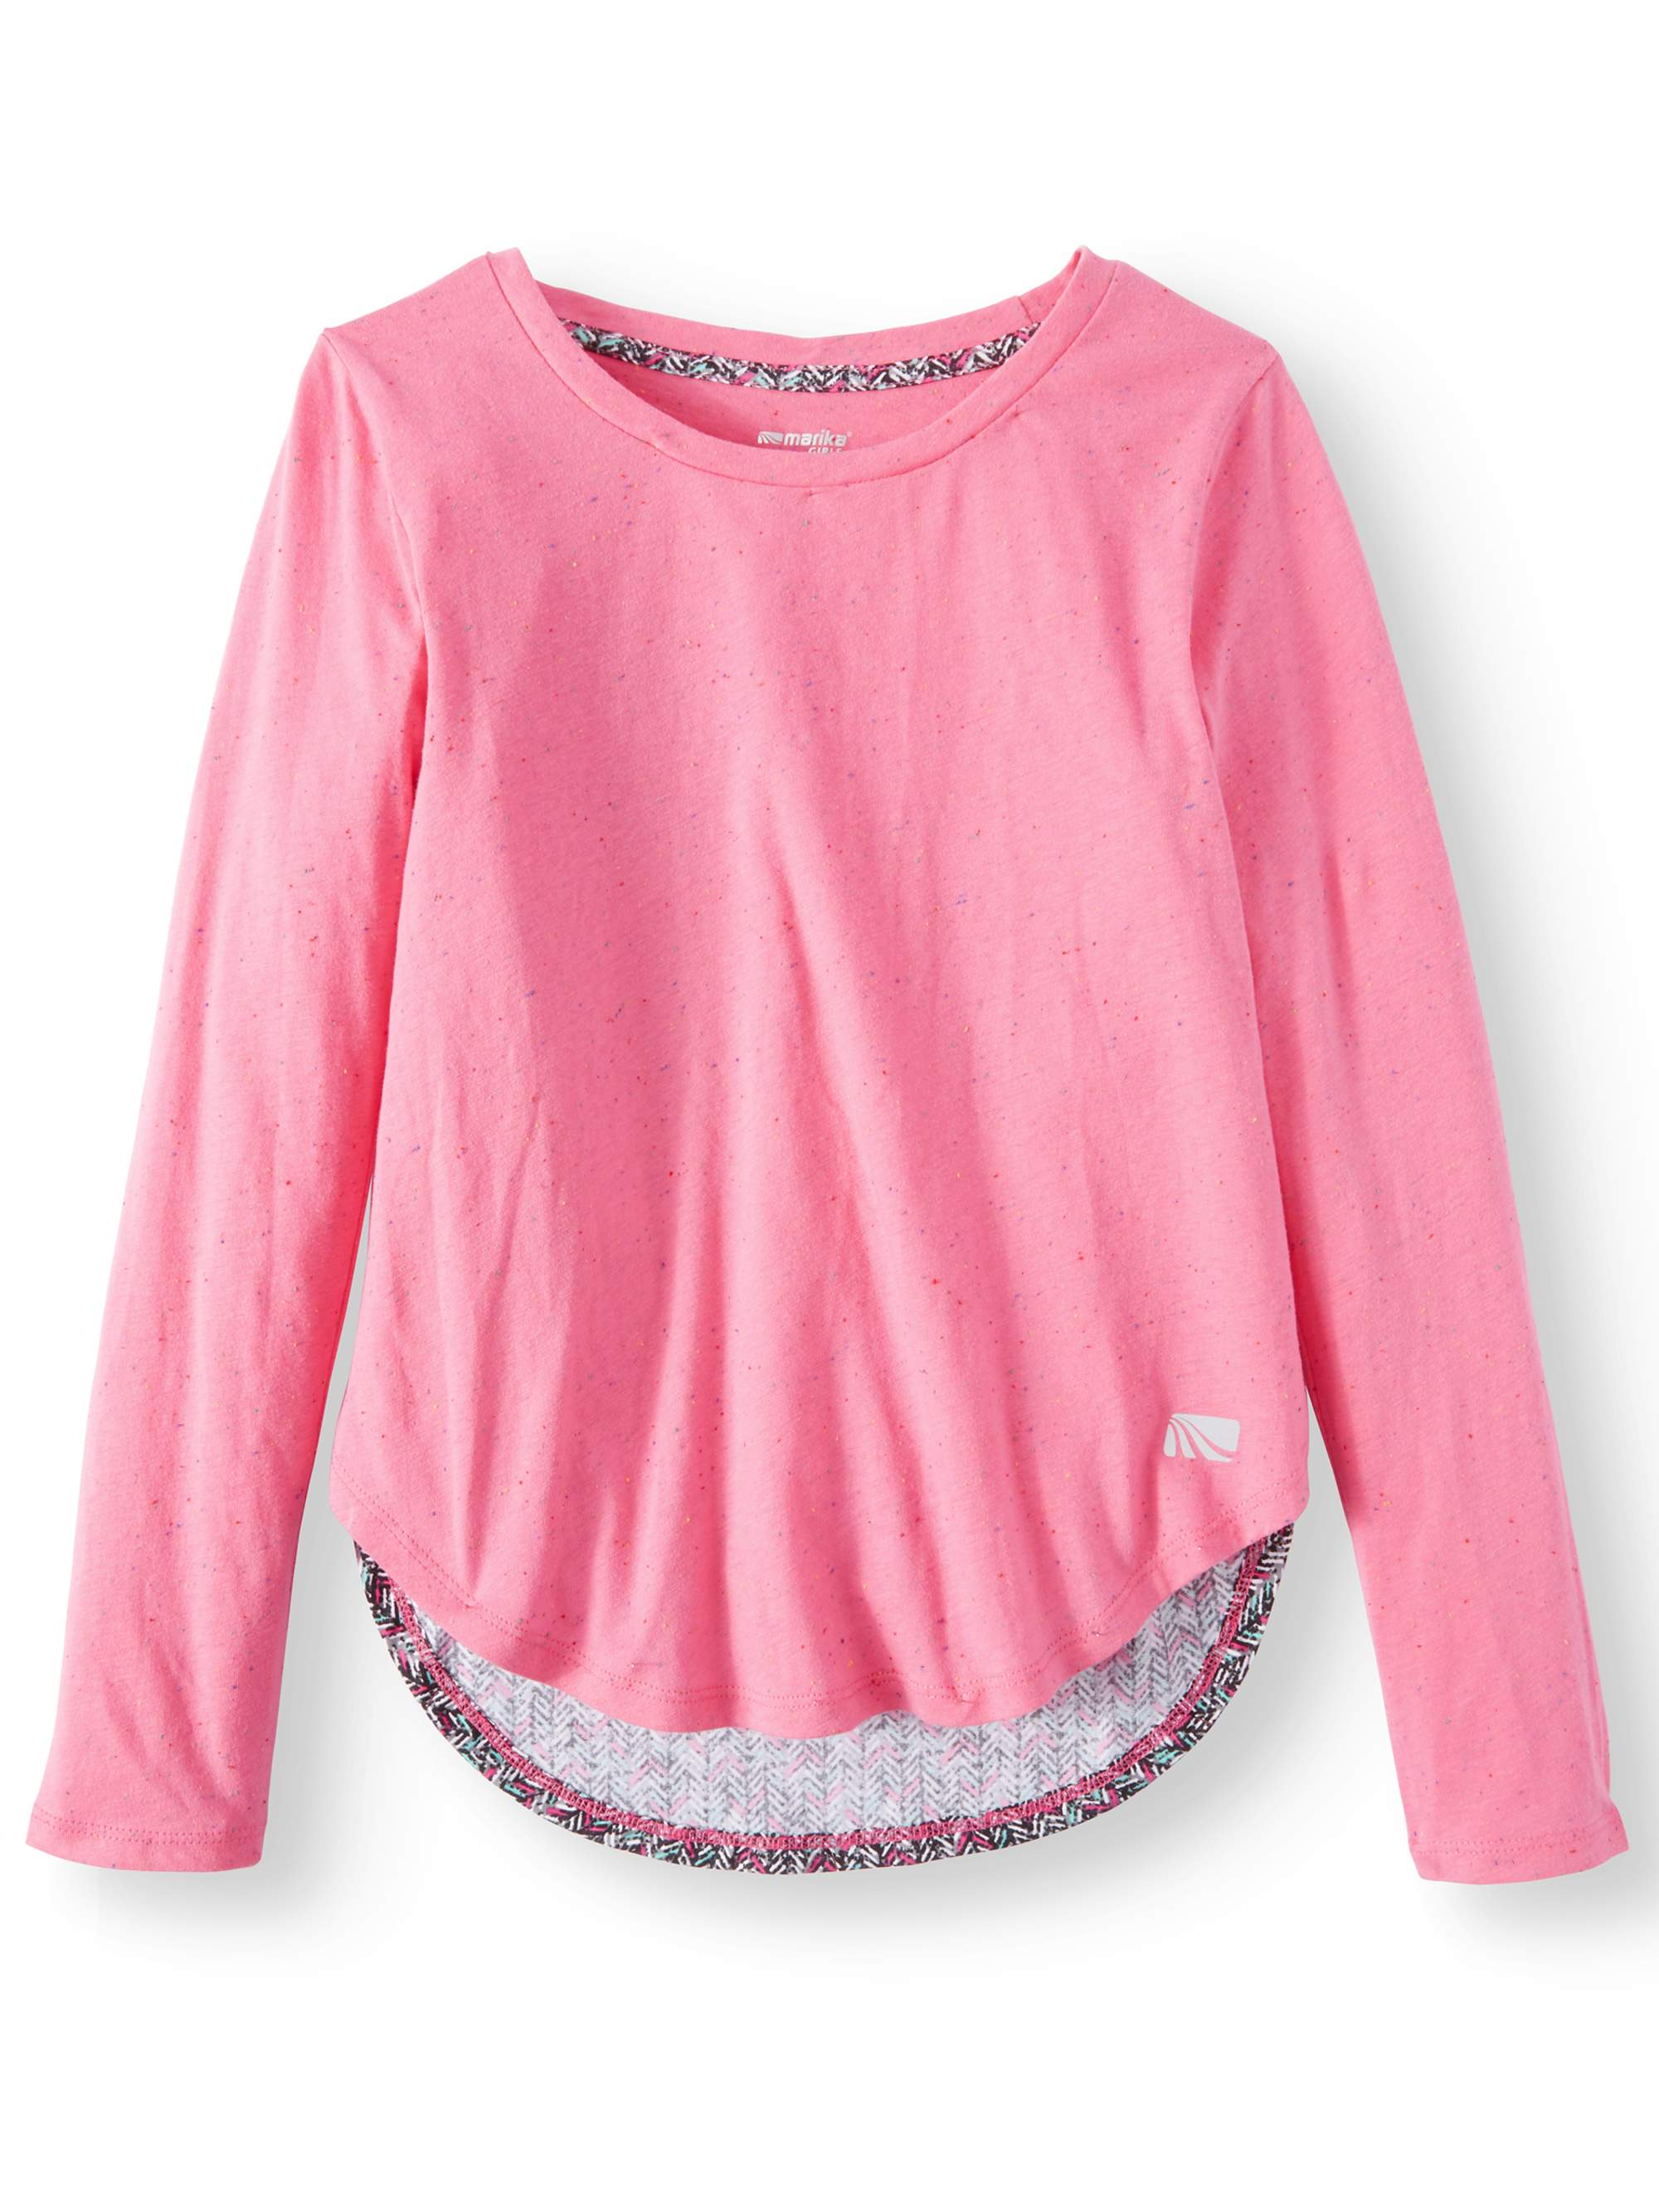 Performance Herringbone Inset Top (Little Girls & Big Girls)